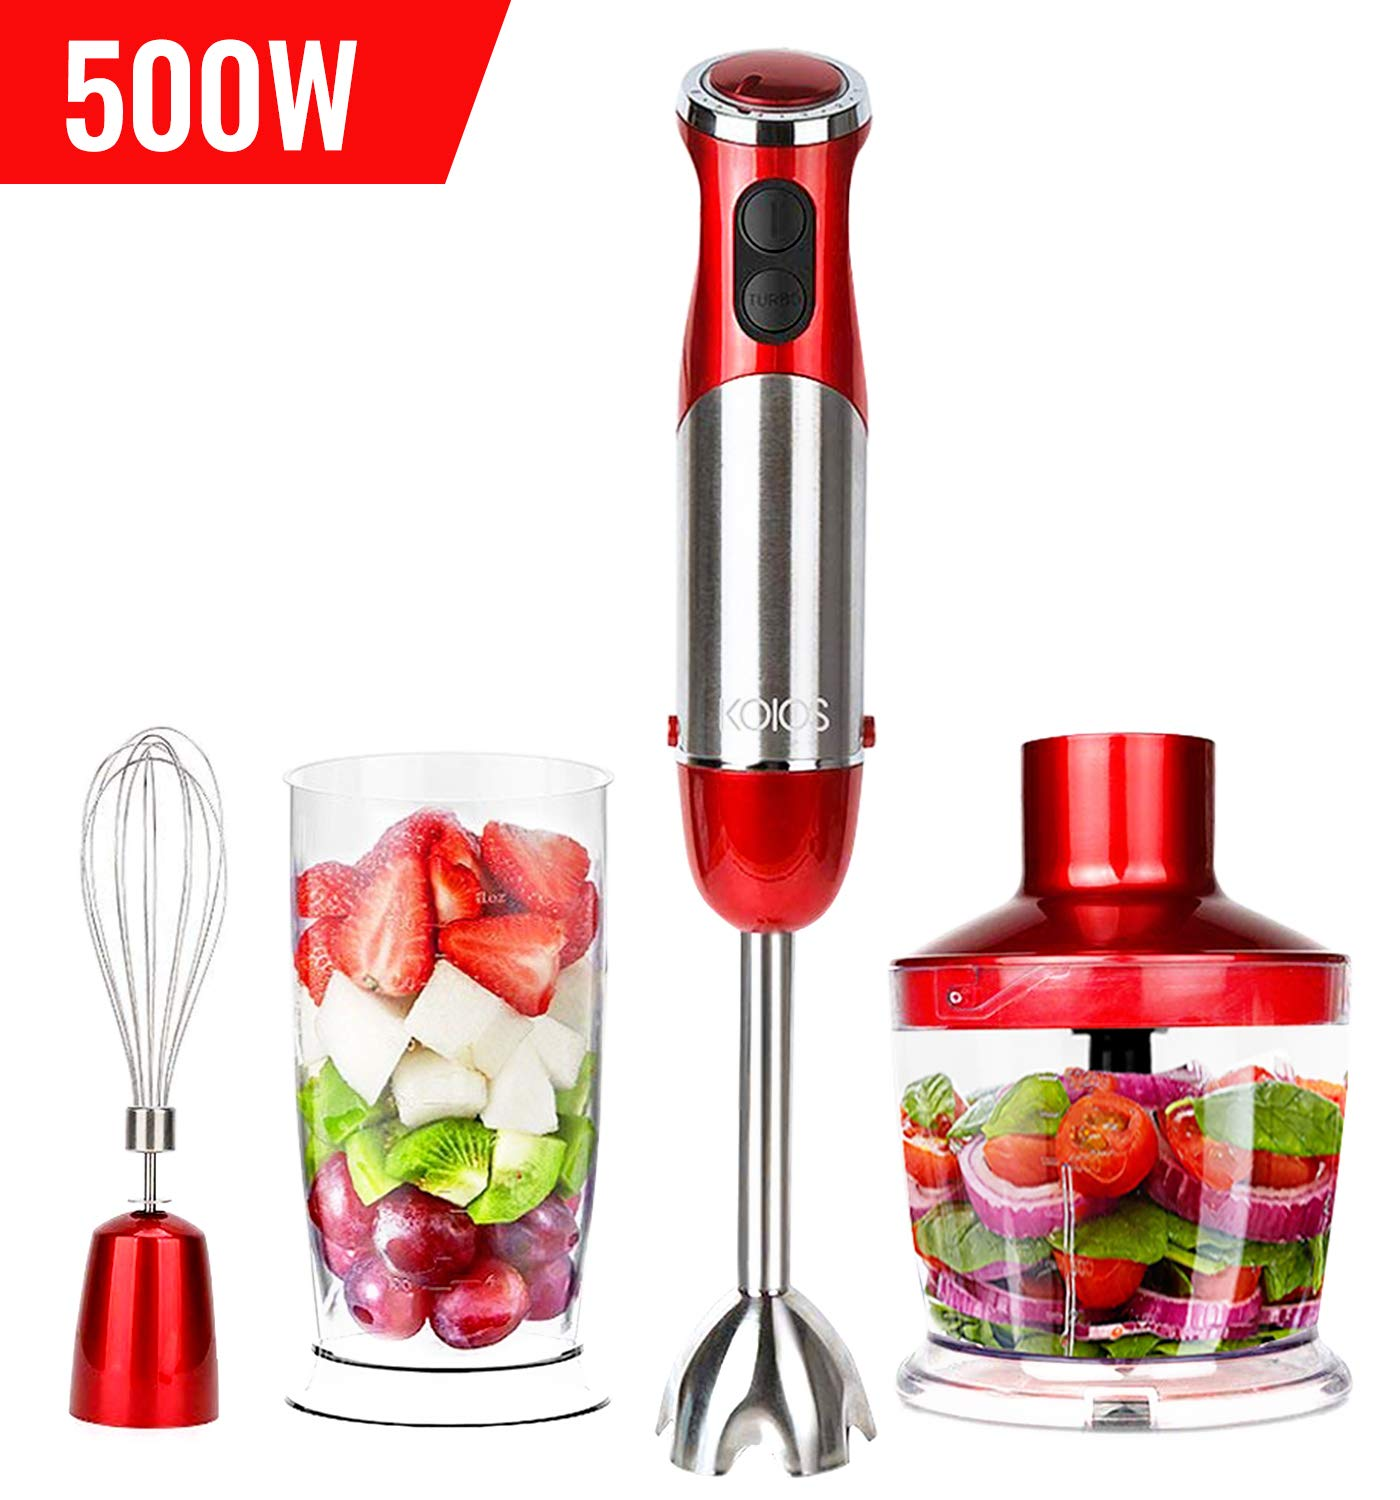 KOIOS Powerful 500 Watt Immersion Blender Setting 6-Speed Multi-Purpose 4-in-1 Hand Blender Includes Stick Blender, 500ml Food Processor, 600ml Mixing Beaker and Whisk - BPA-Free